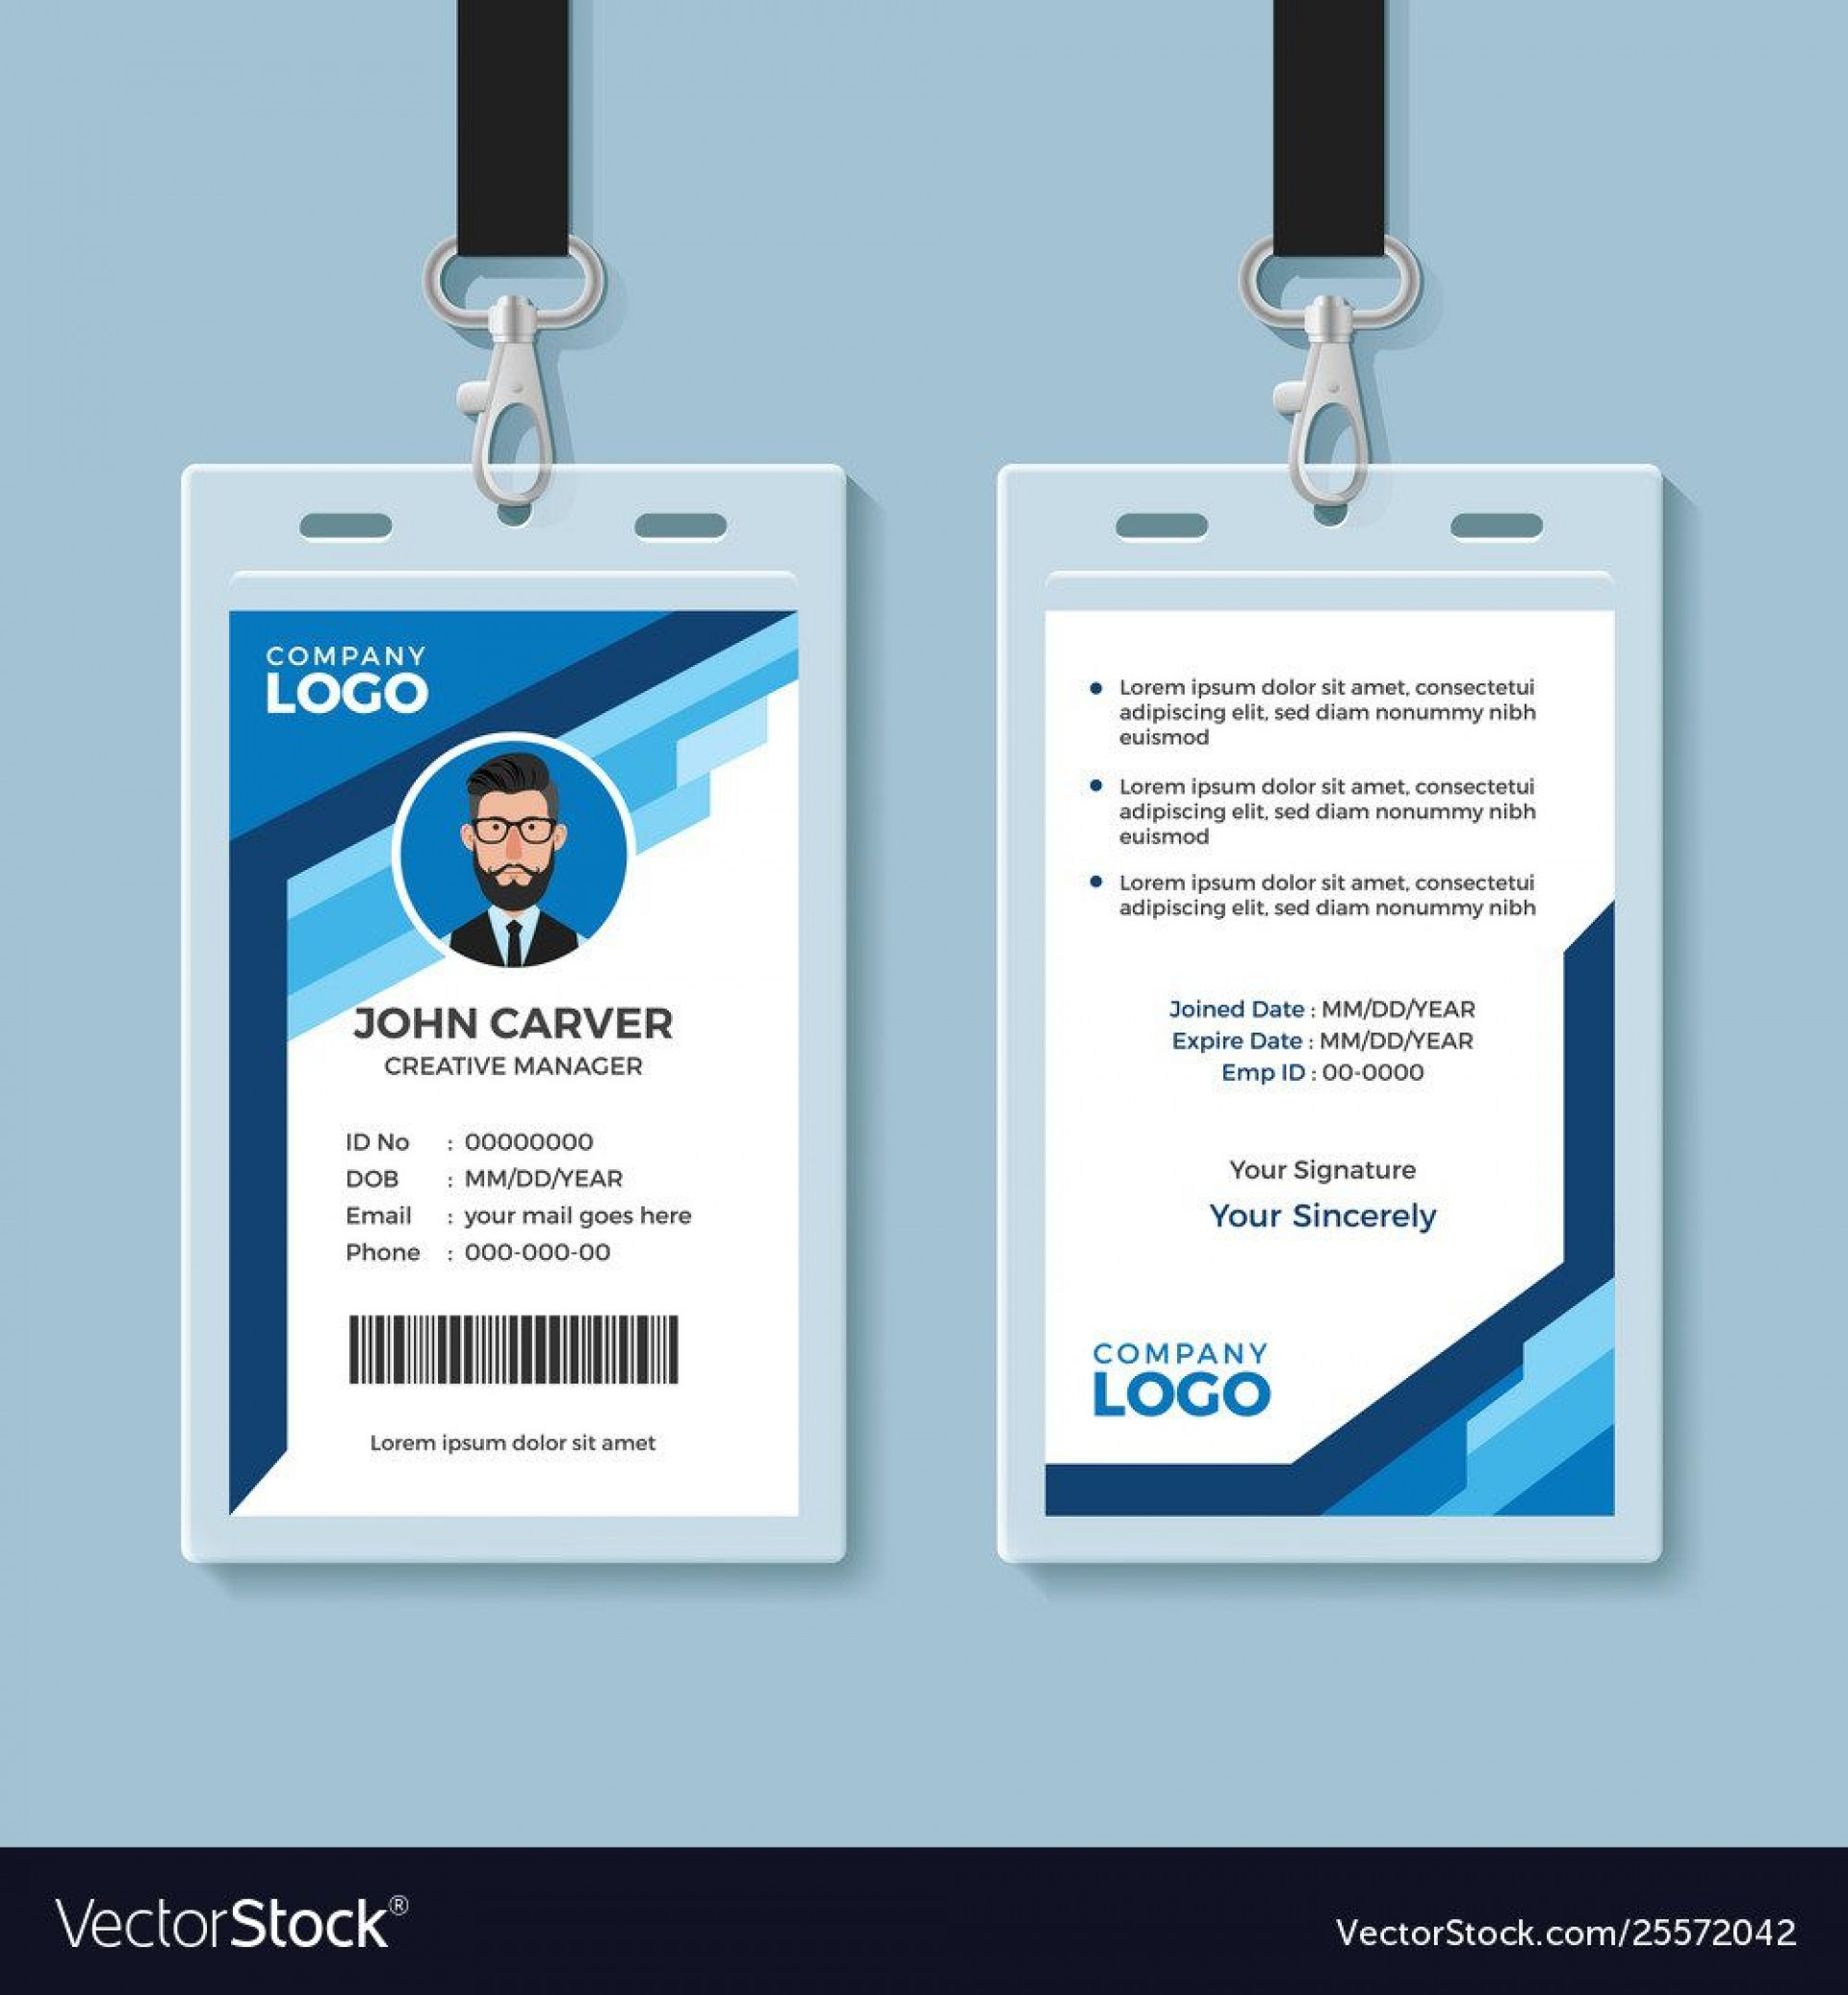 005 Striking Id Card Template Free Download Highest Clarity  Design Photoshop Identity Student Word1920